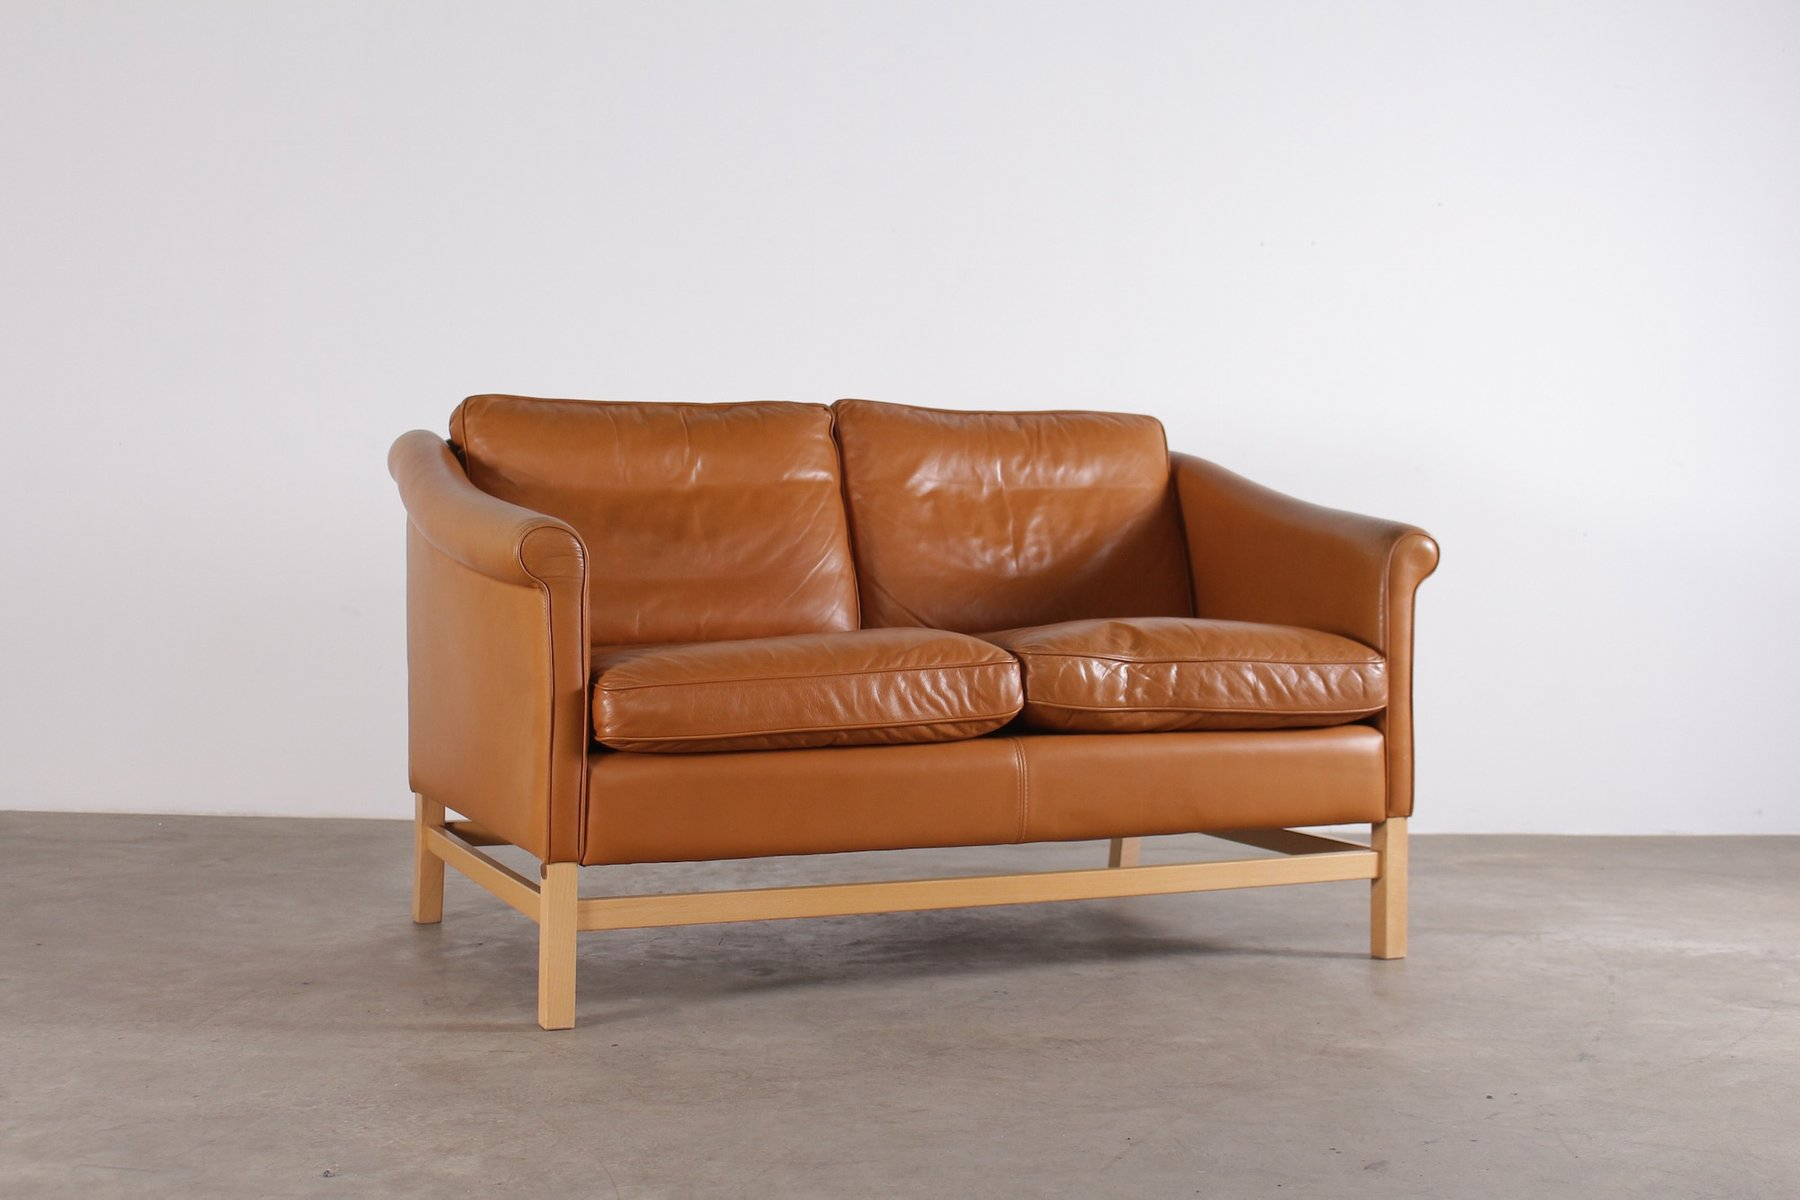 Scandinavian Cognac Leather Sofa From Stouby, 1970s